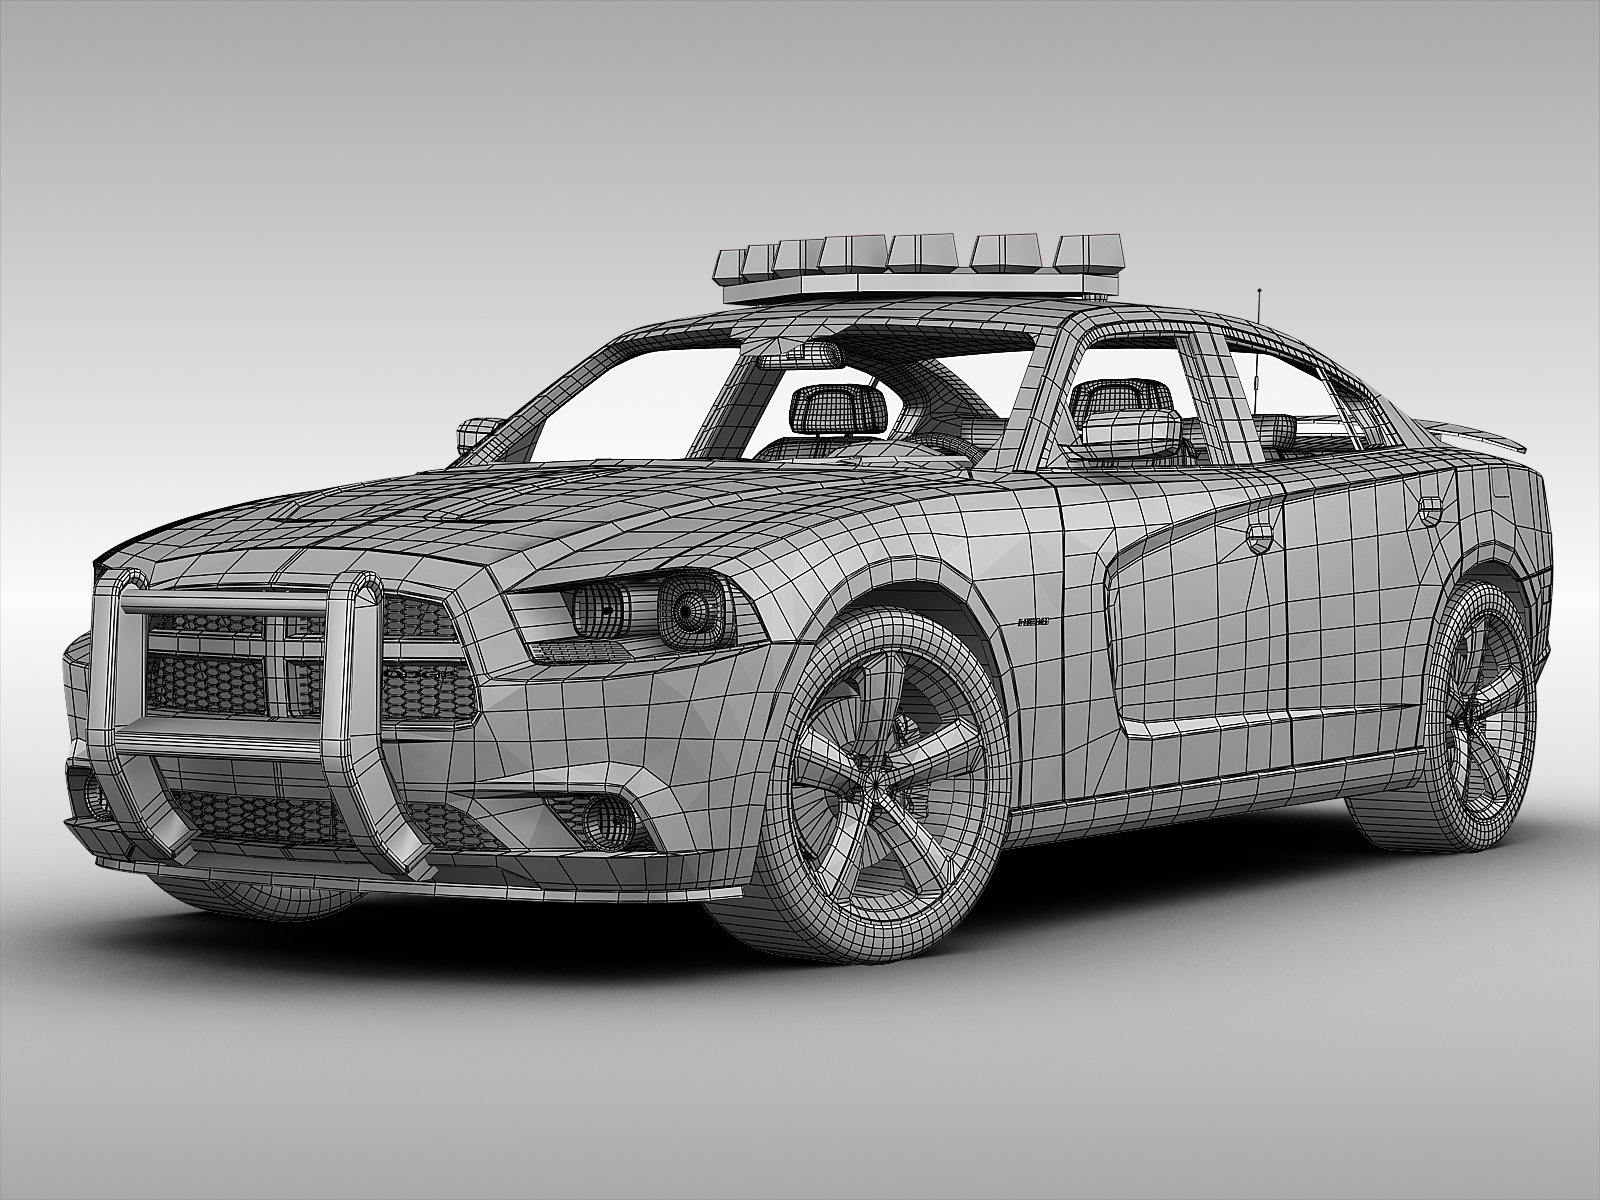 3d model dodge charger nypd police car 2013 cgtrader dodge charger nypd police car 2013 3d model max obj 3ds fbx stl 8 malvernweather Images